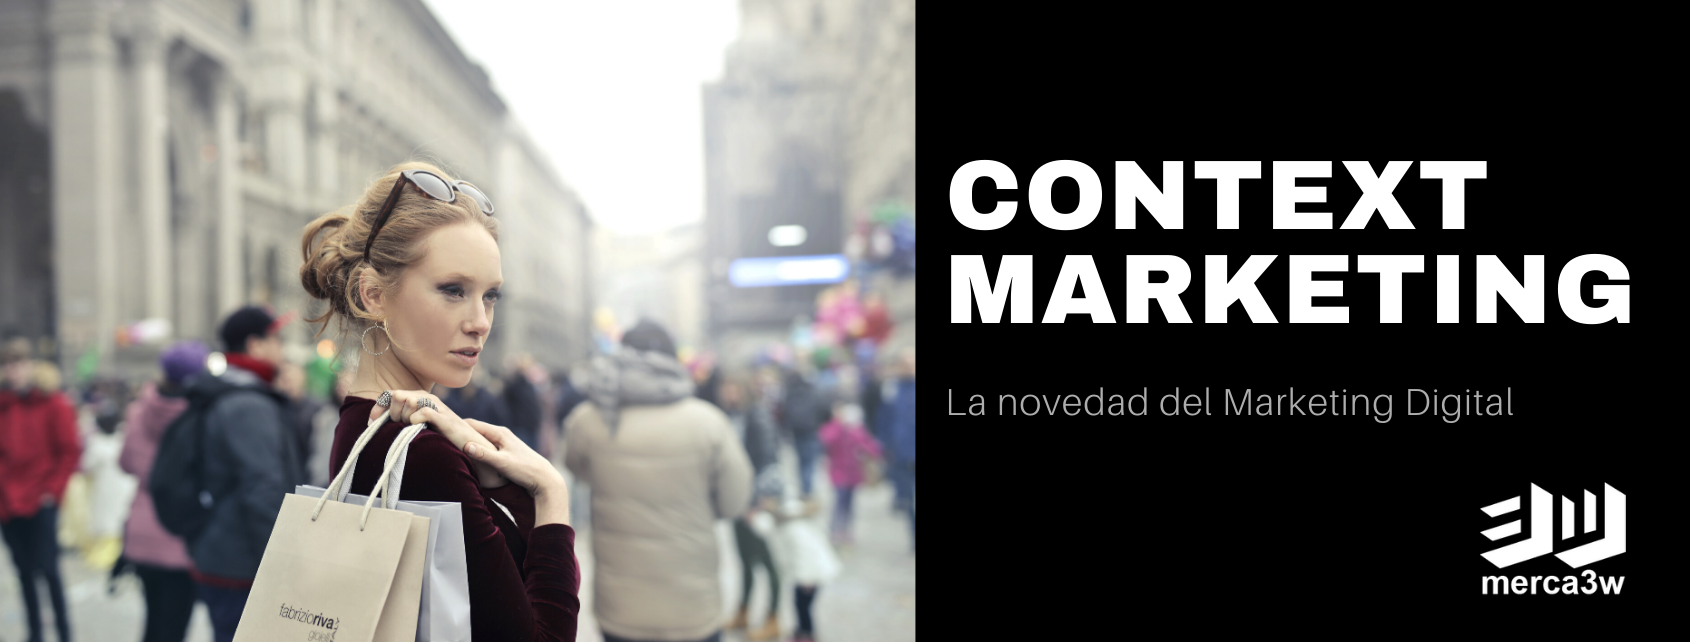 CONTEXT-MARKETING-merca3w-agencia-marketing-digital